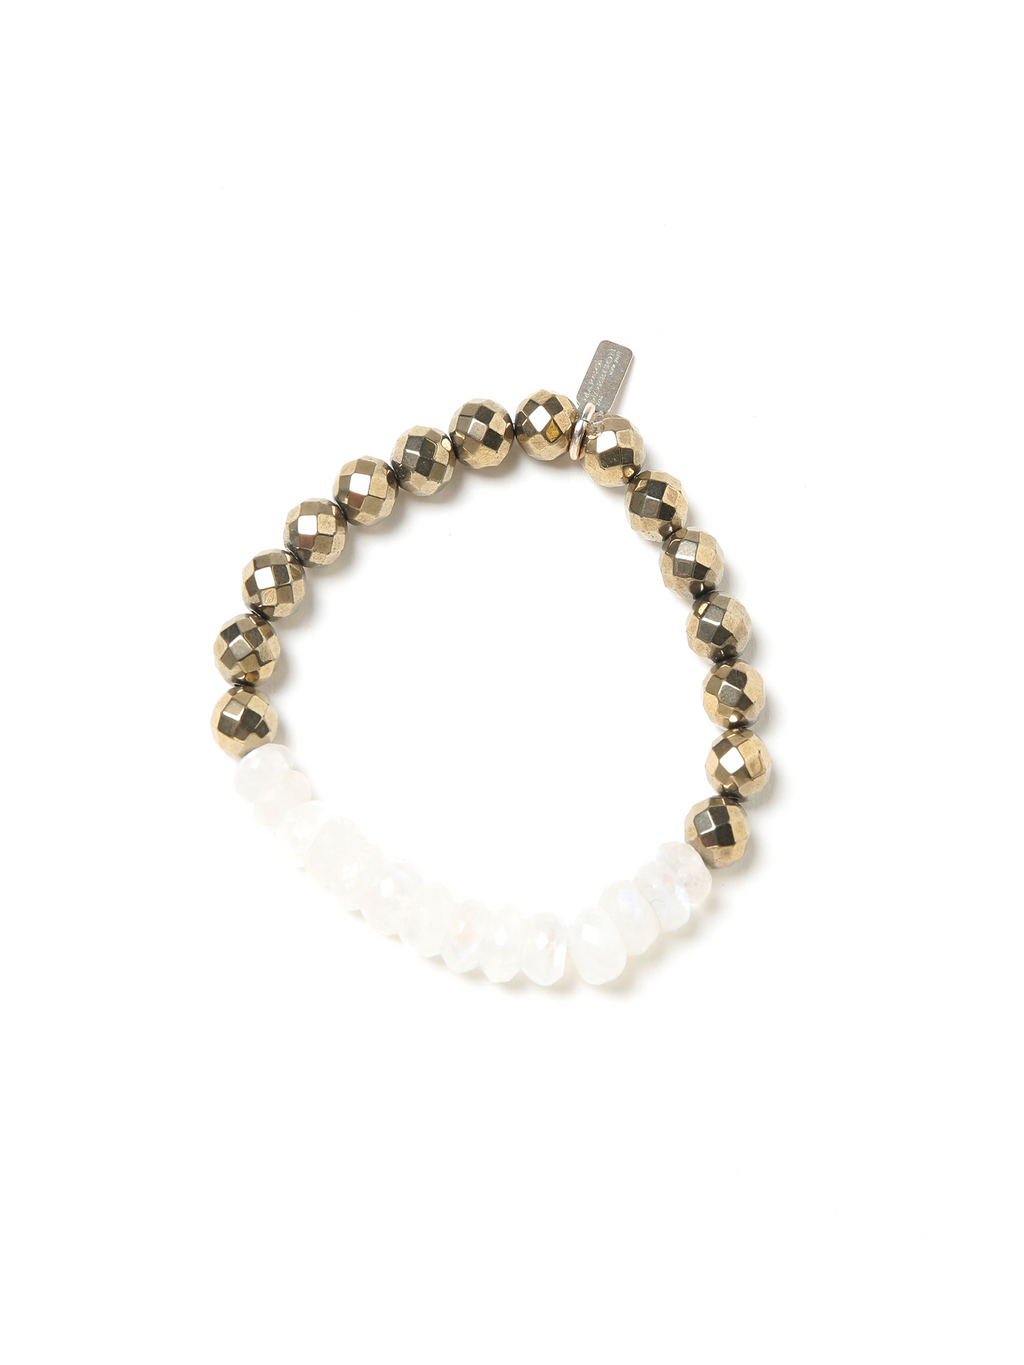 Margo Morrison Faceted Moonstone and Pyrite Stretch Bracelet